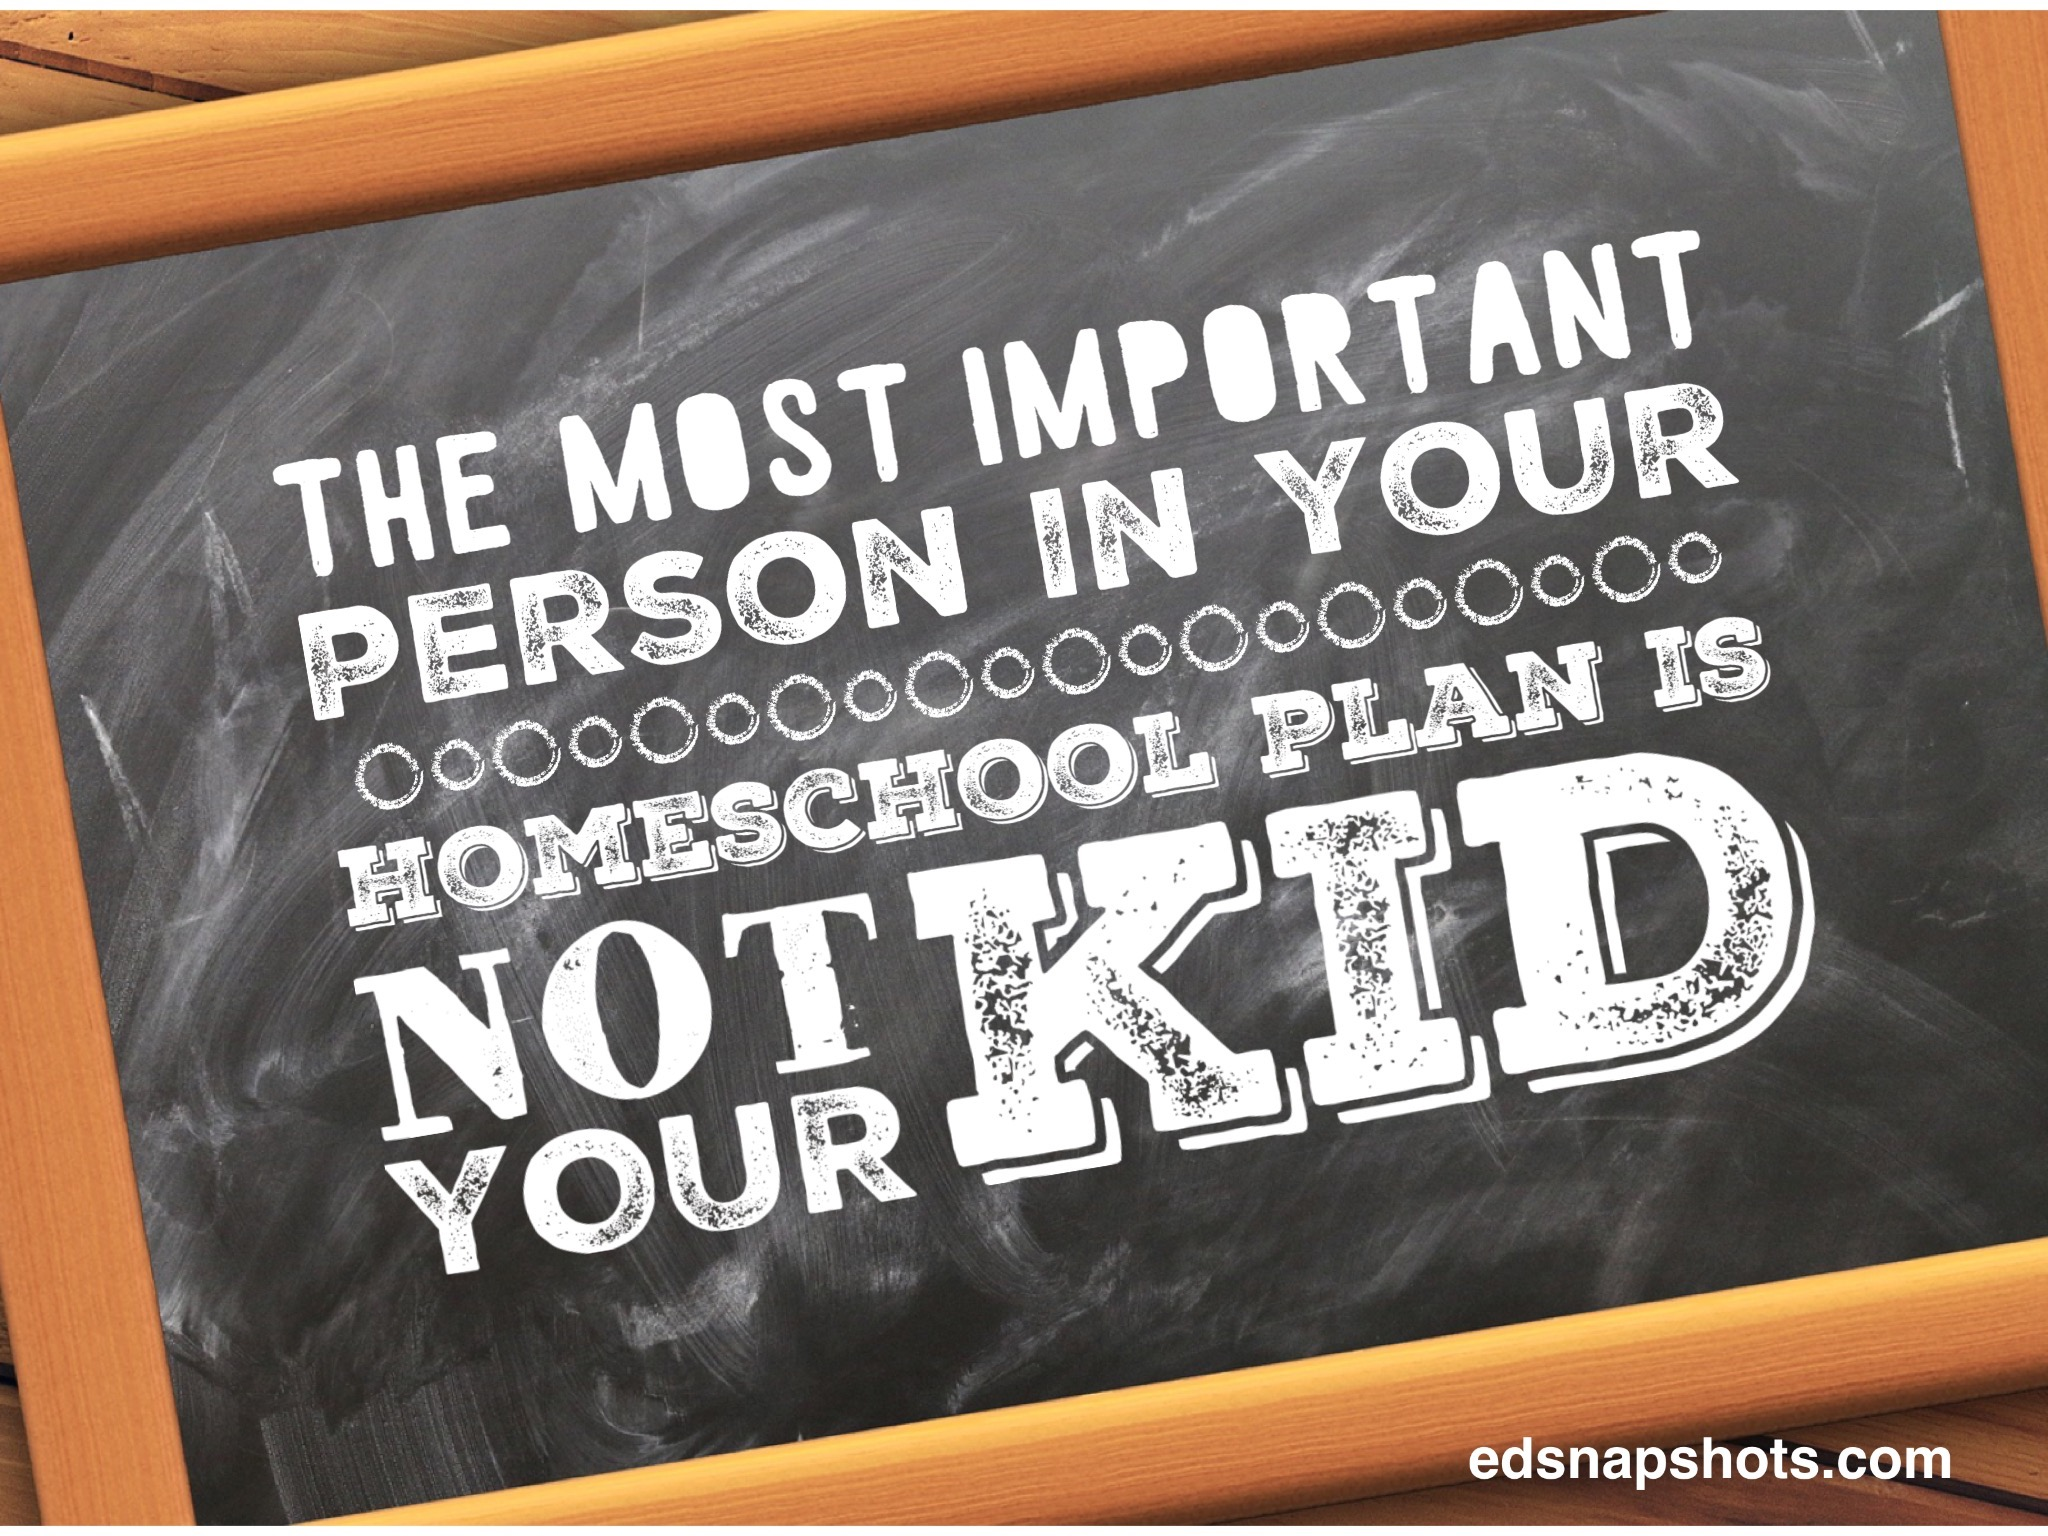 The most important person in your homeschool plan is not your kid